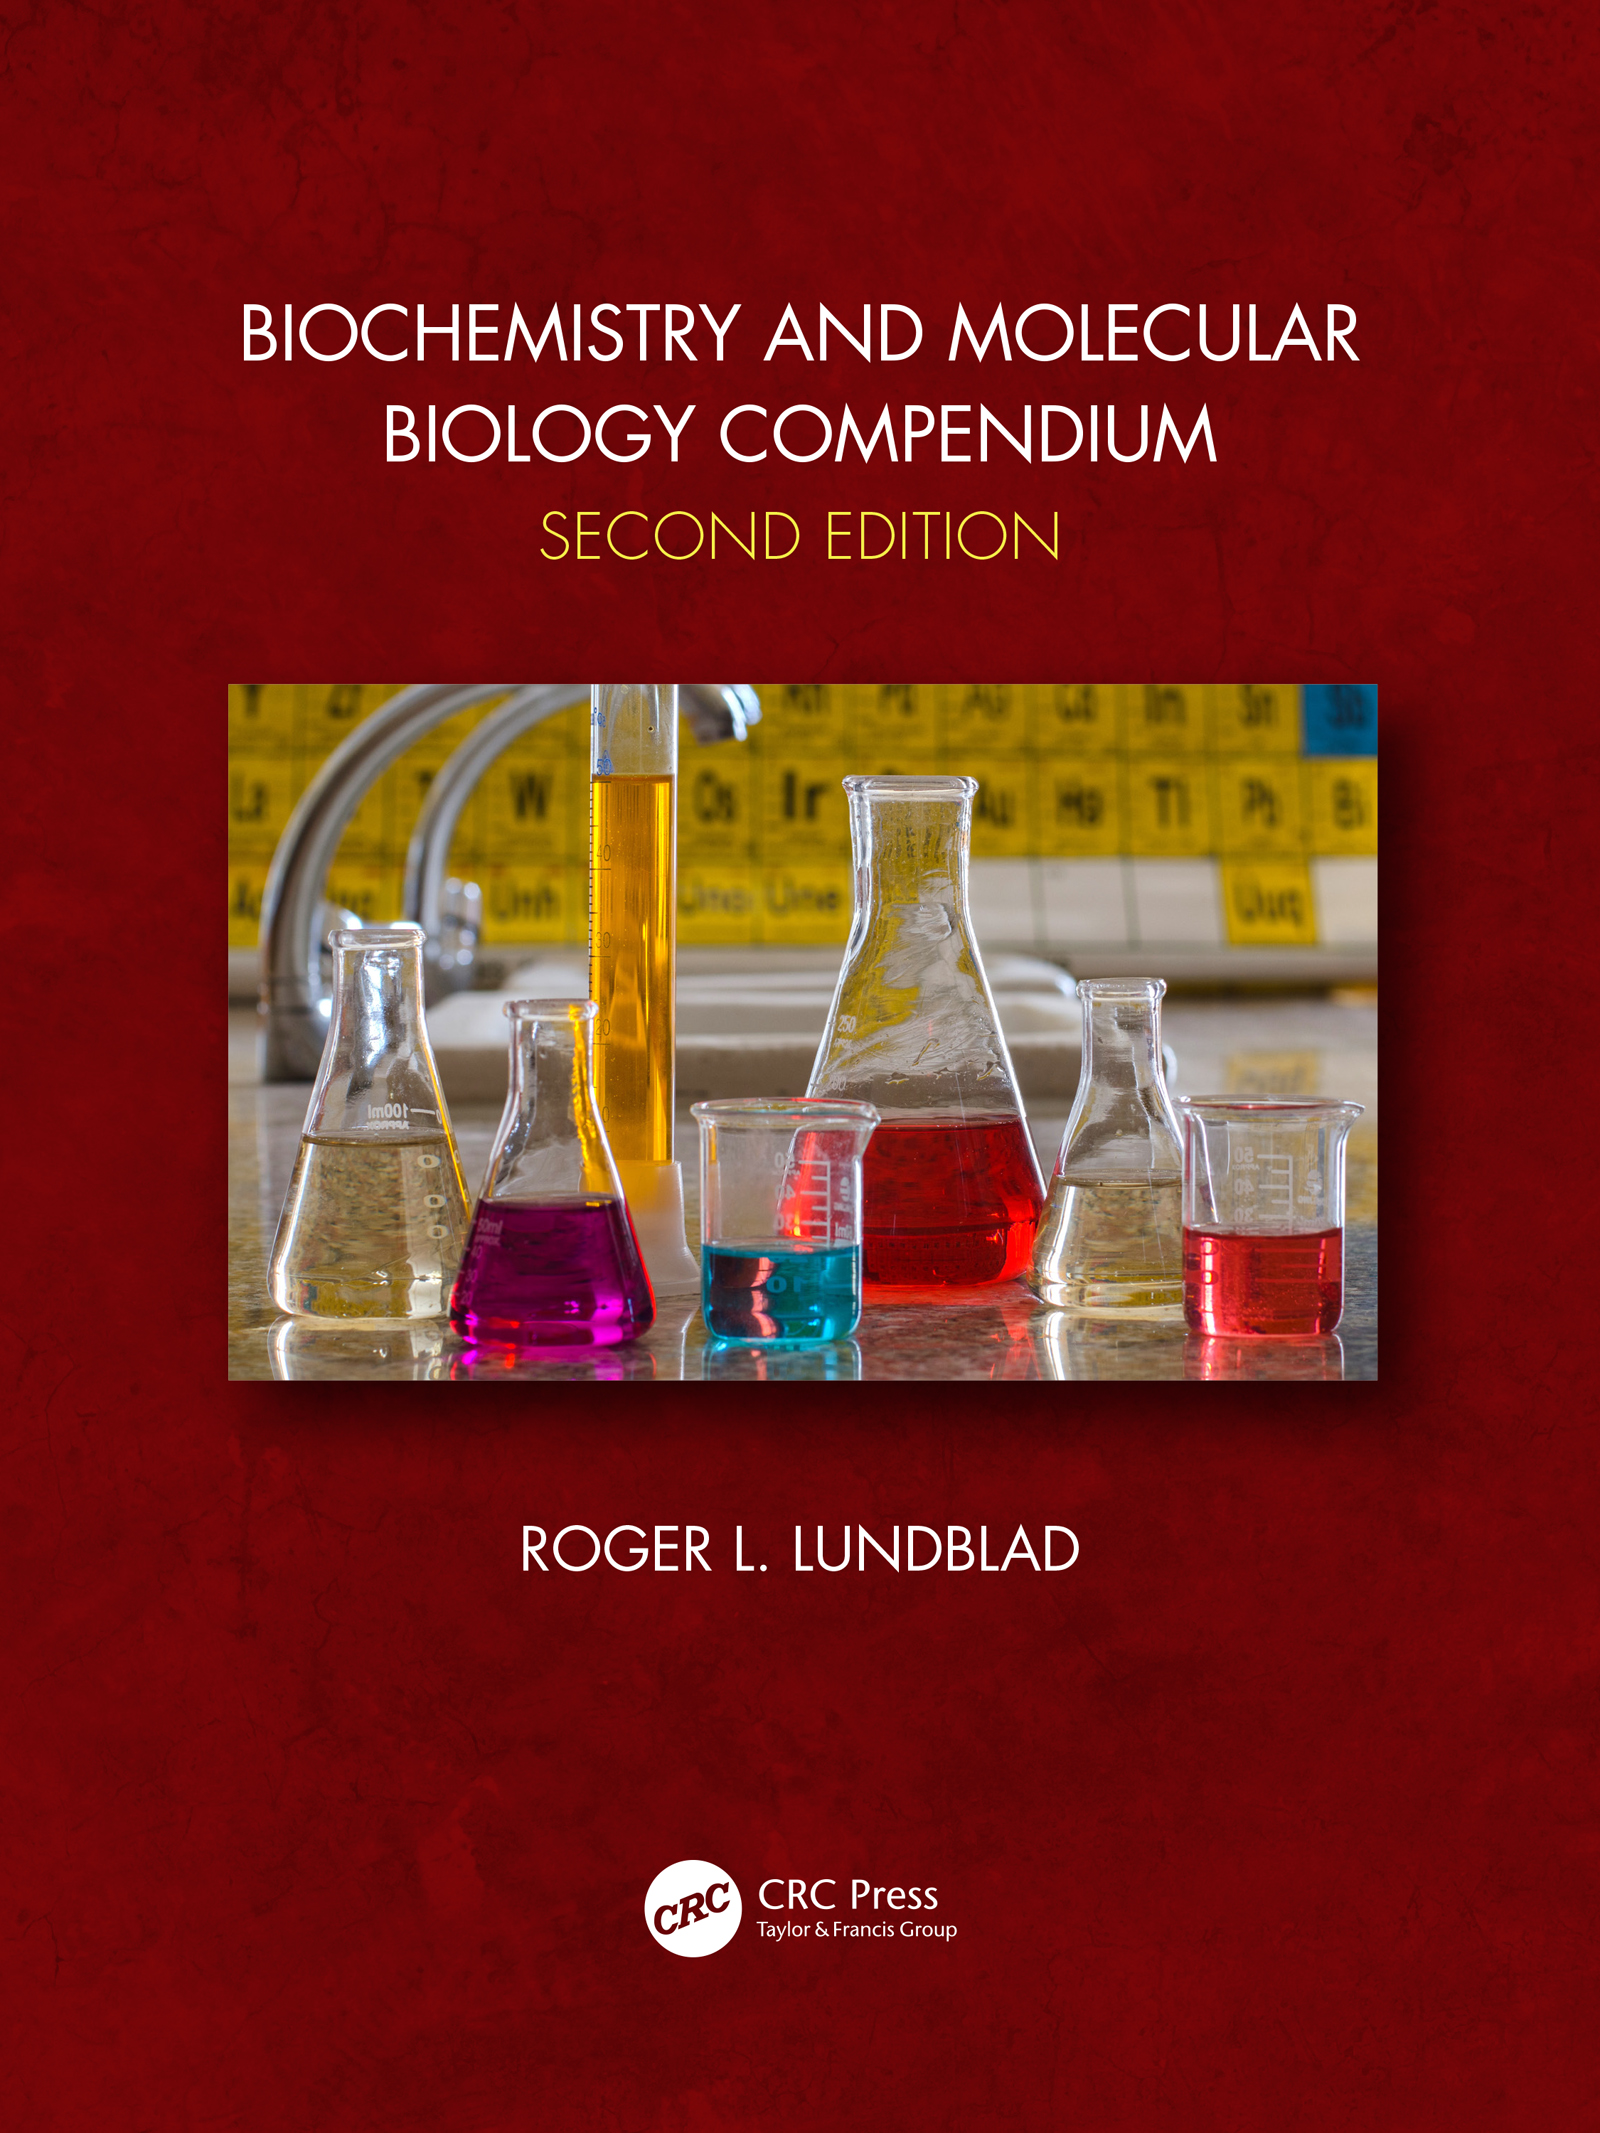 Biochemistry and Molecular Biology Compendium book cover